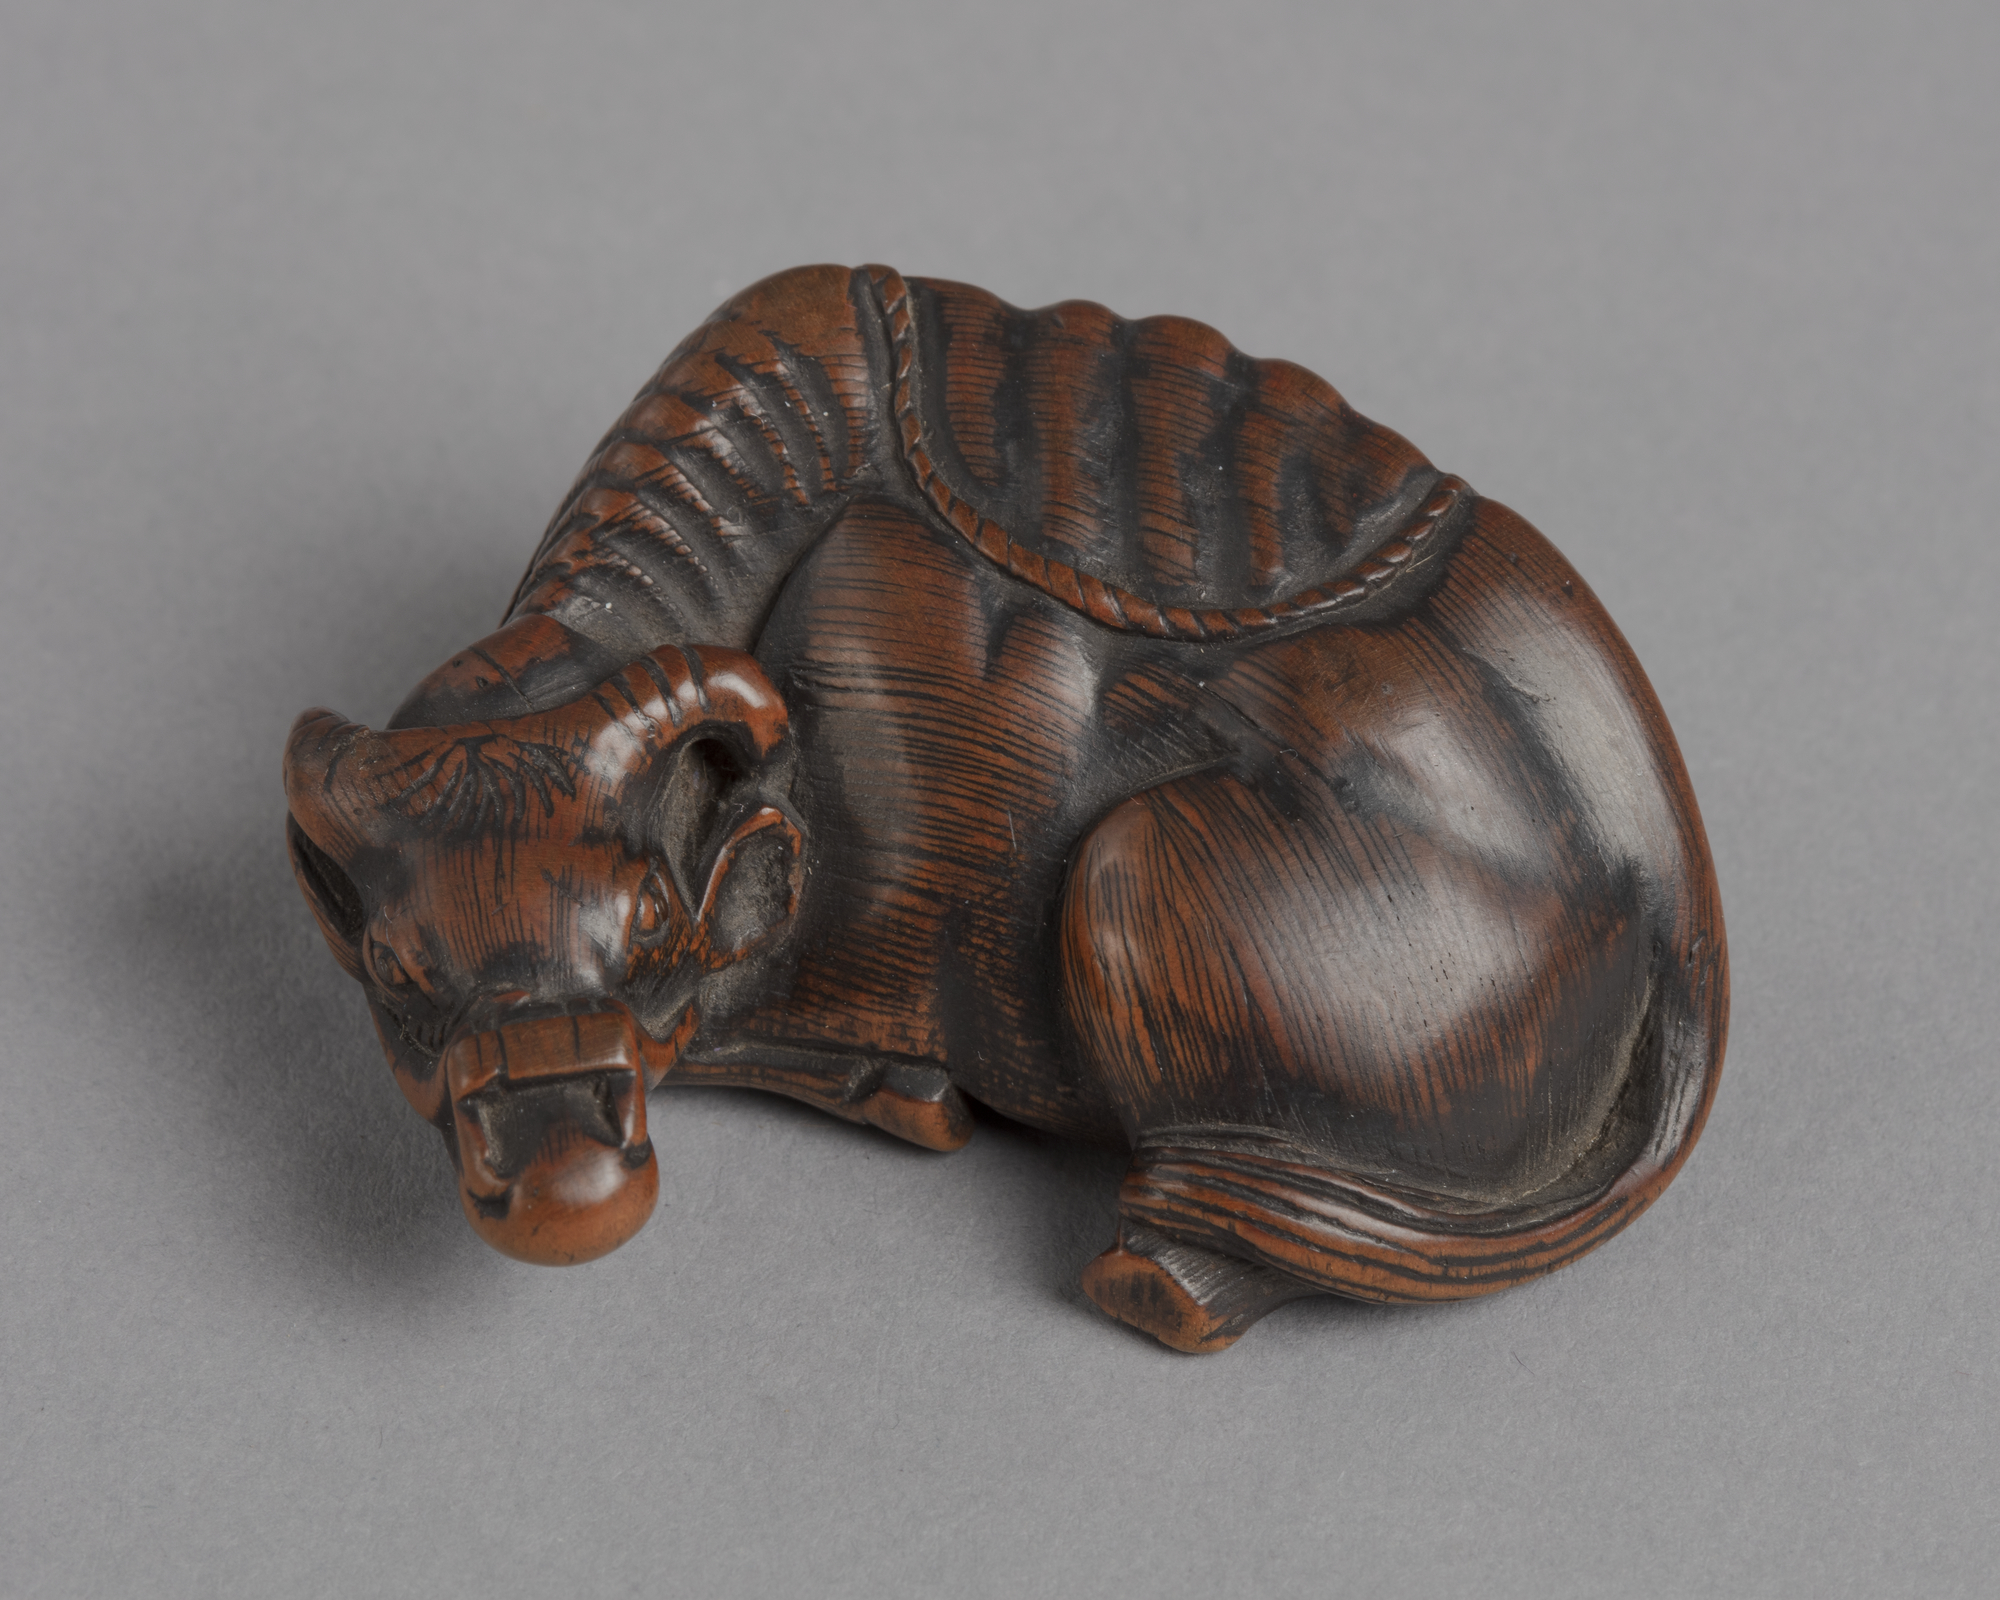 A Japanese boxwood netsuke of a recumbent ox with a bridle on its head.